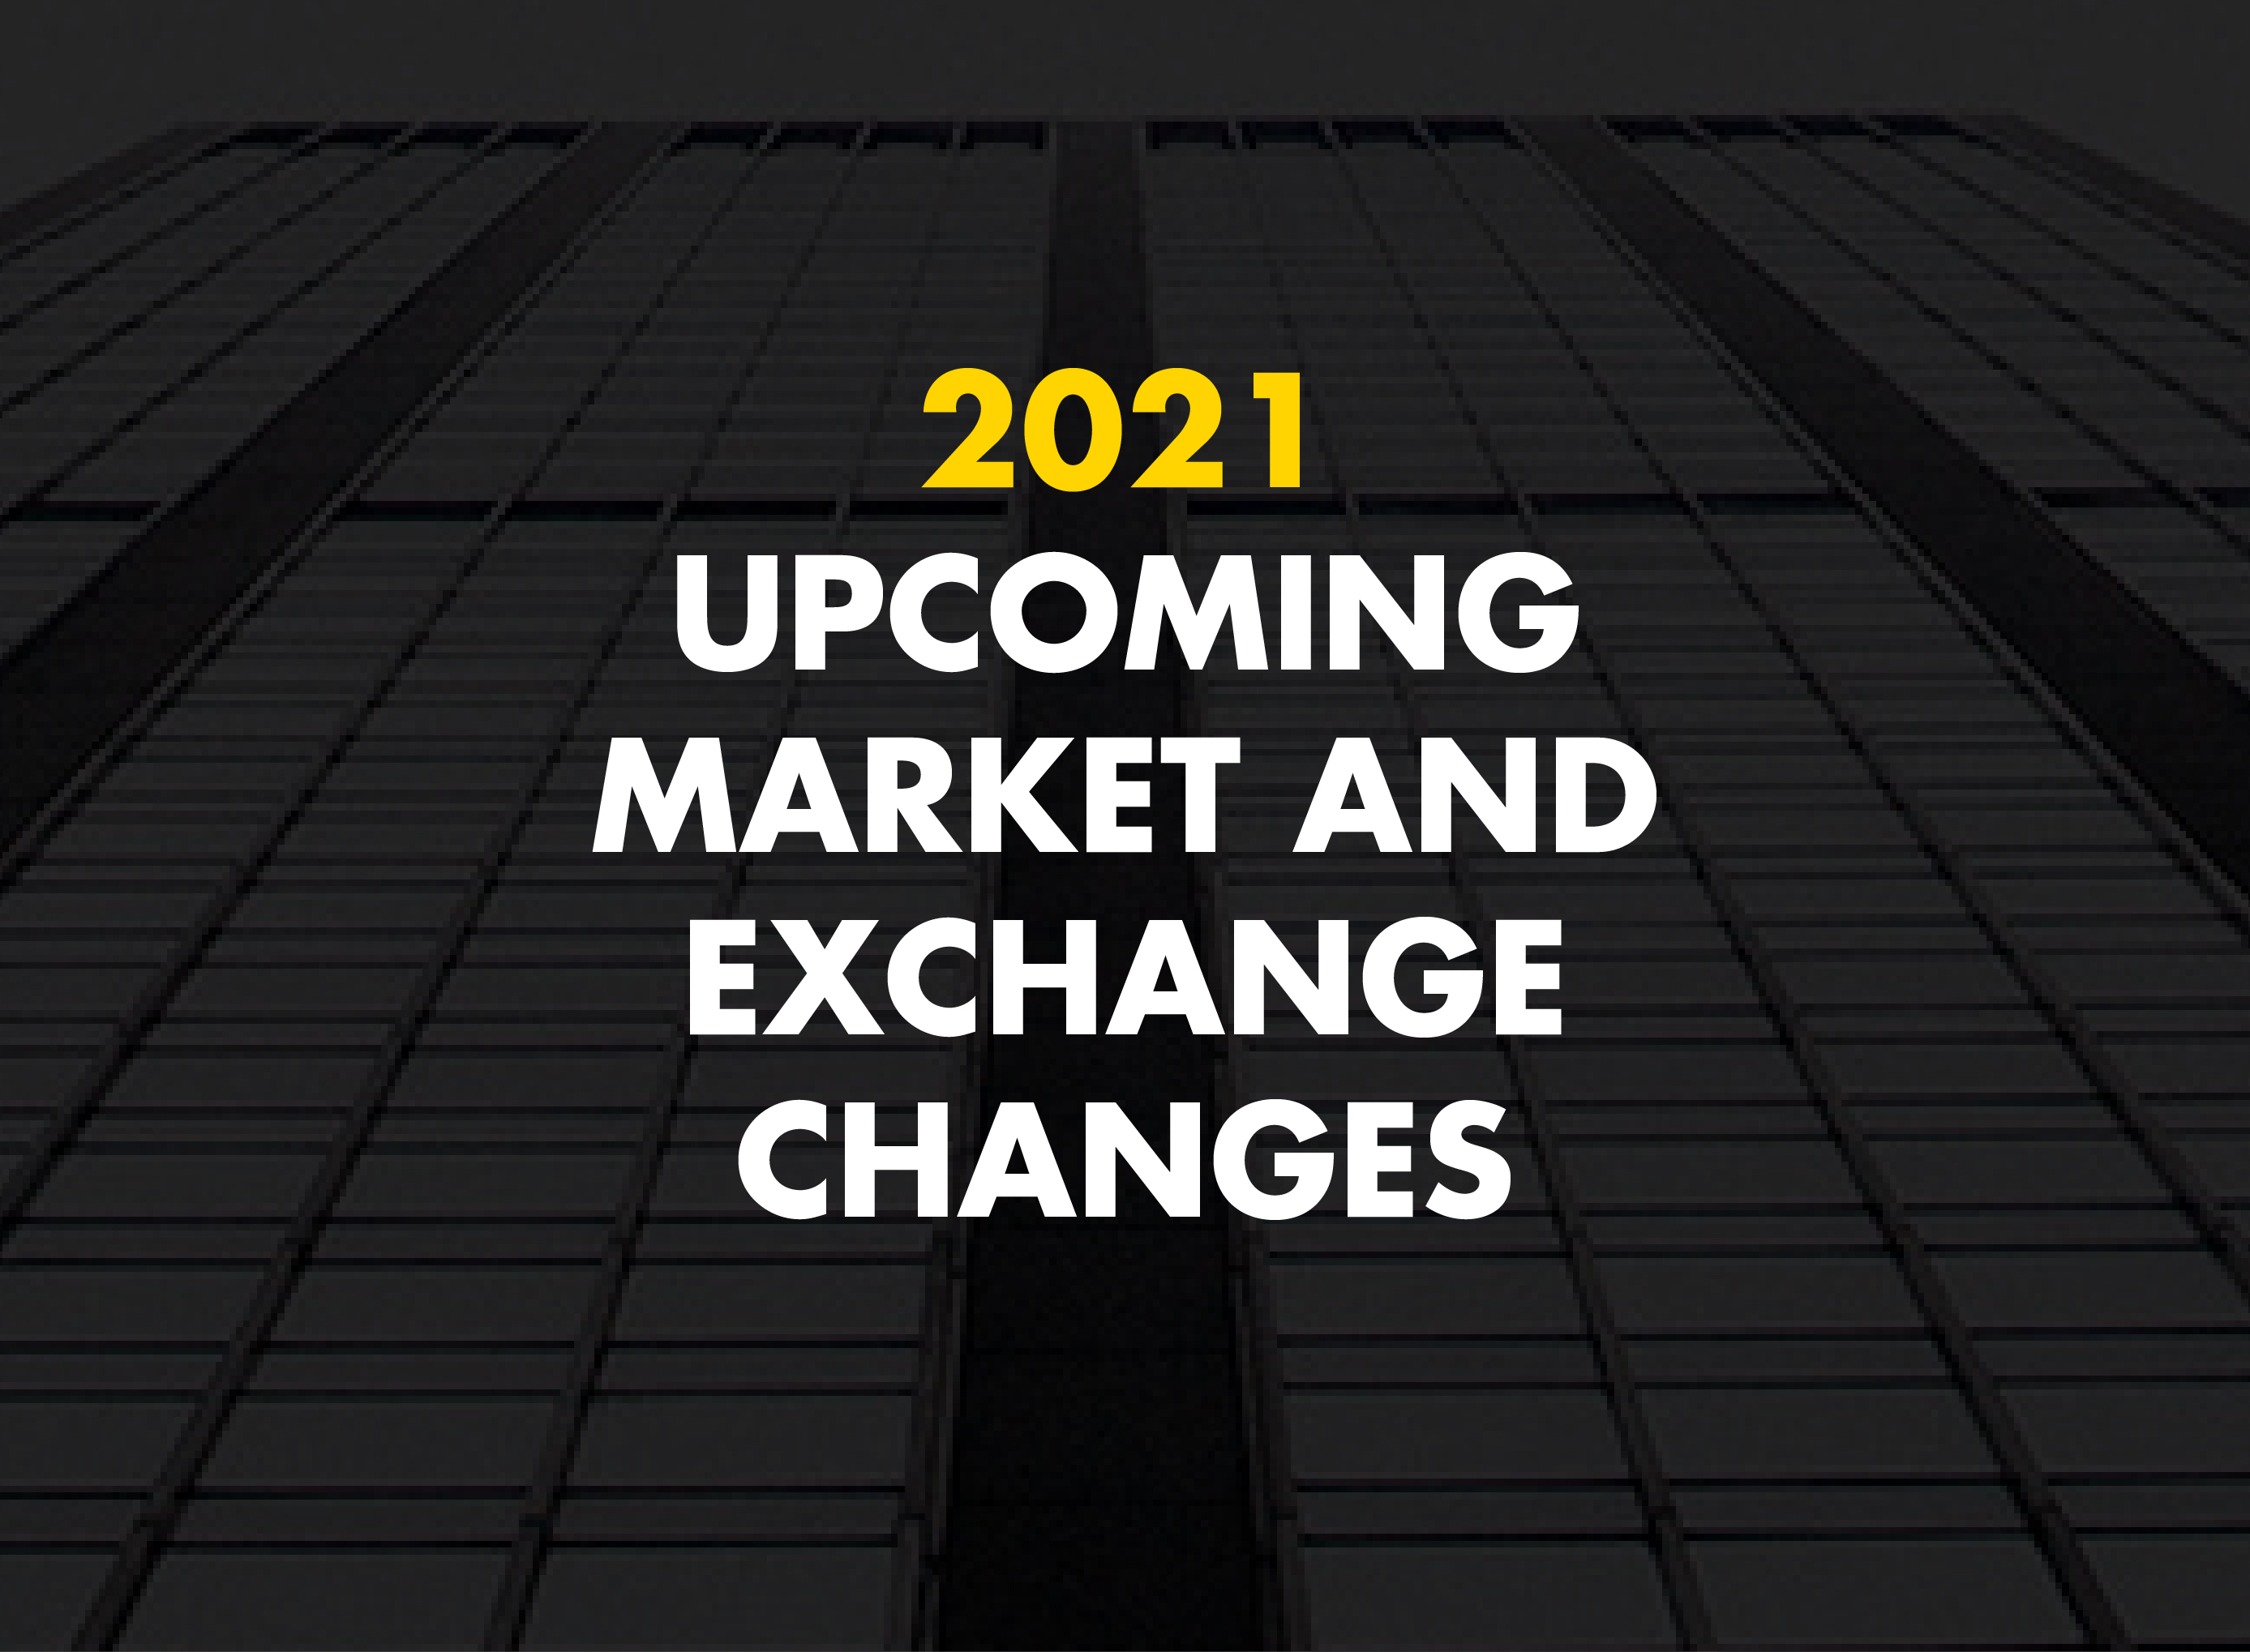 2021 Upcoming market and exchange-driven changes